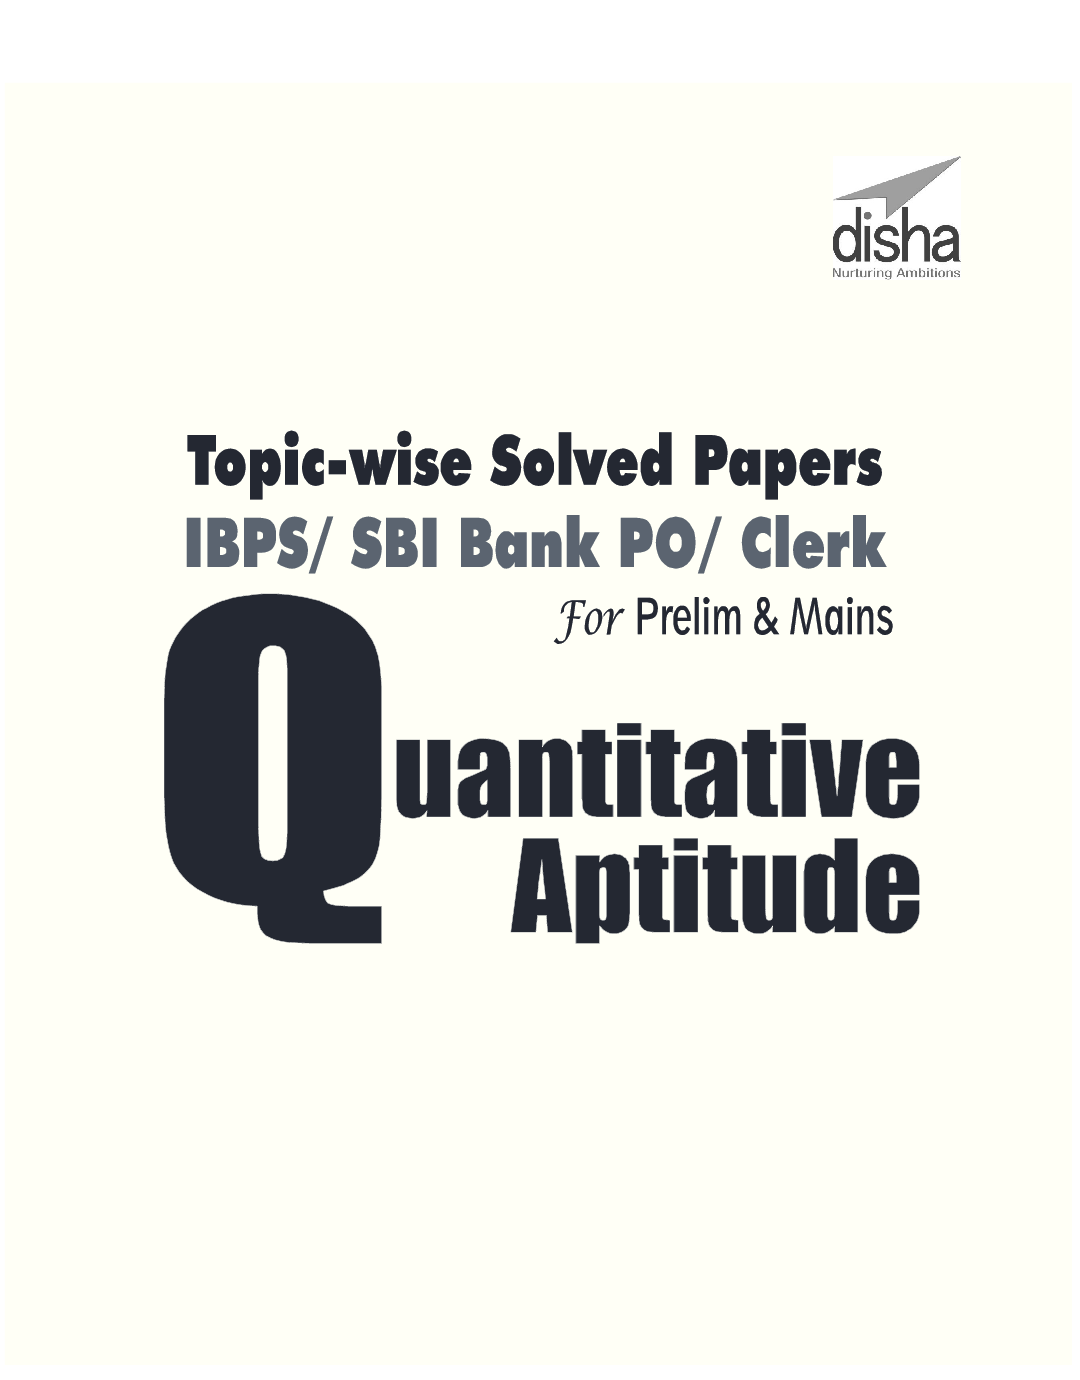 Topicwise Solved Papers For IBPS/ SBI Bank PO/ Clerk Prelim & Main Exam (2010-18) Quantitative Aptitude - Page 2